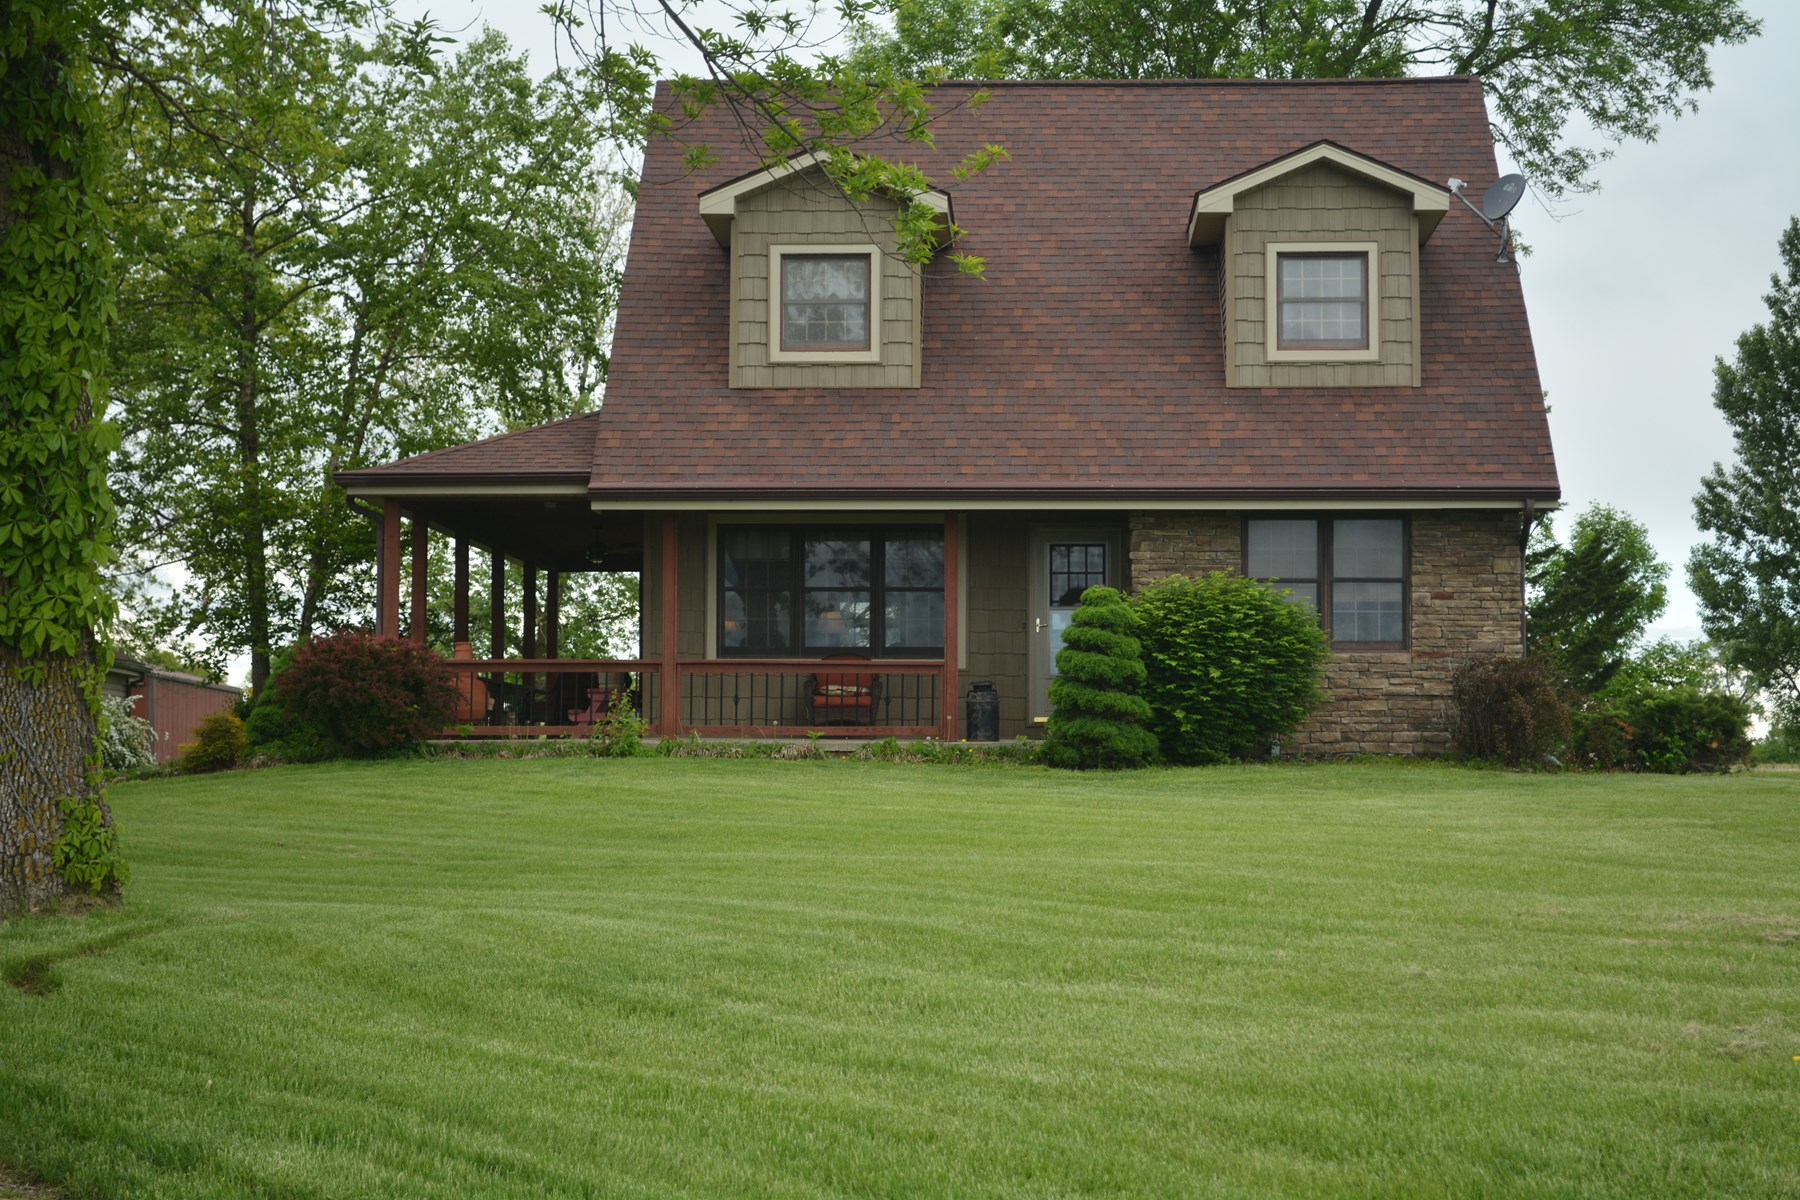 4 BR, 3.5 BA Country Home on Small Acreage with Lake MO